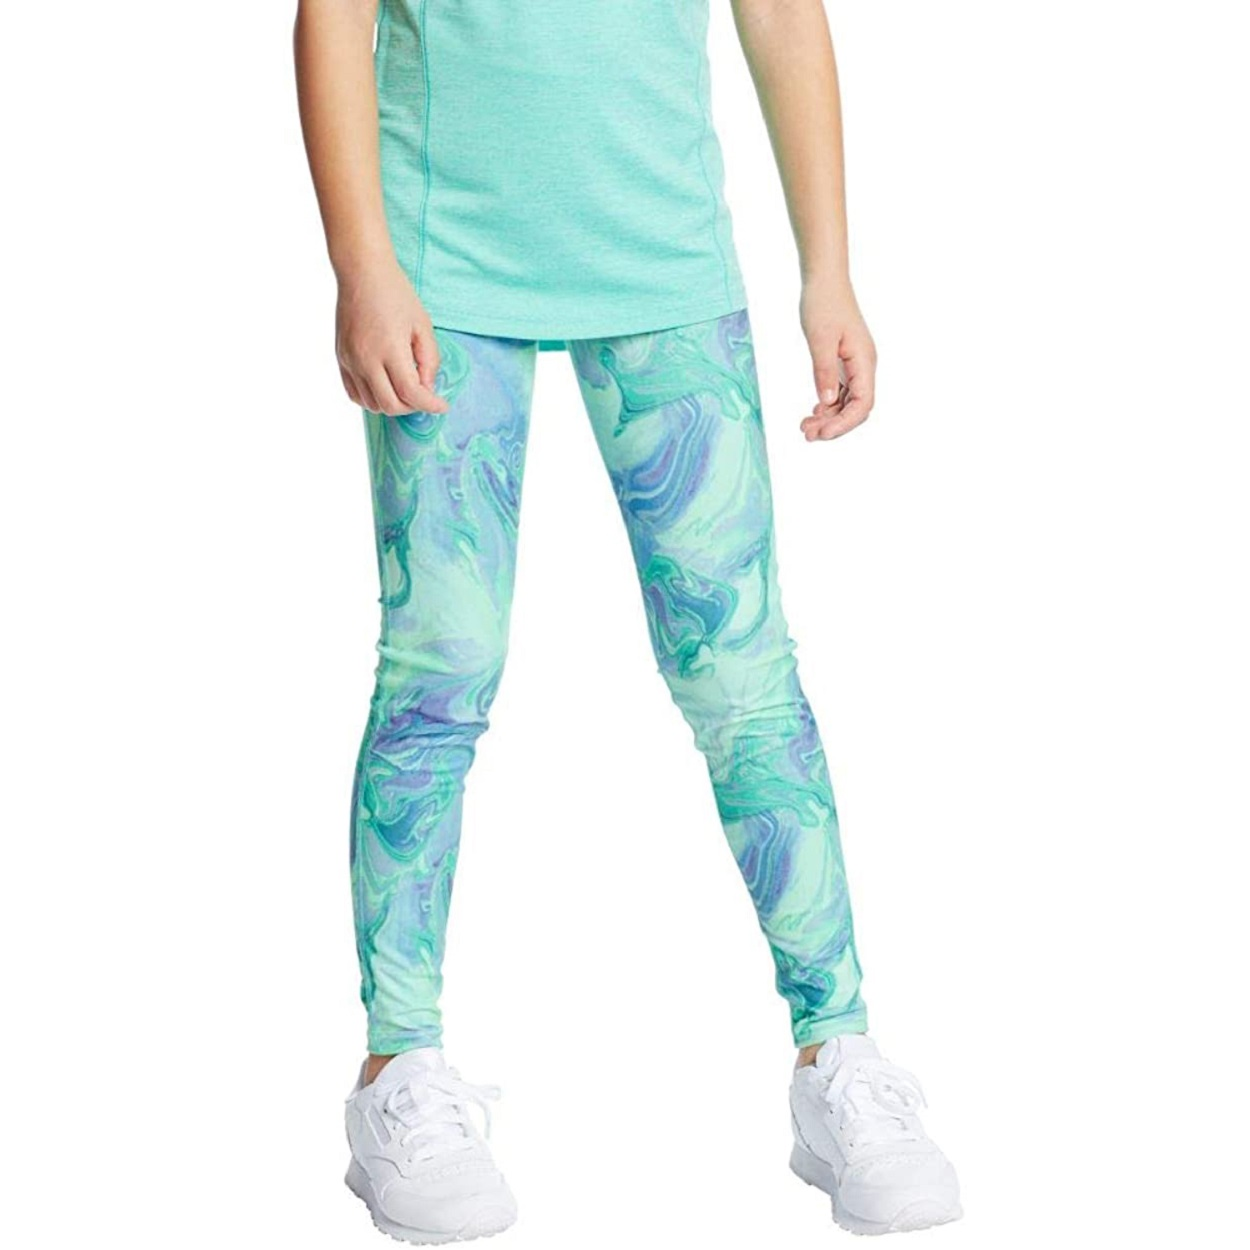 blue marbled childrens leggings